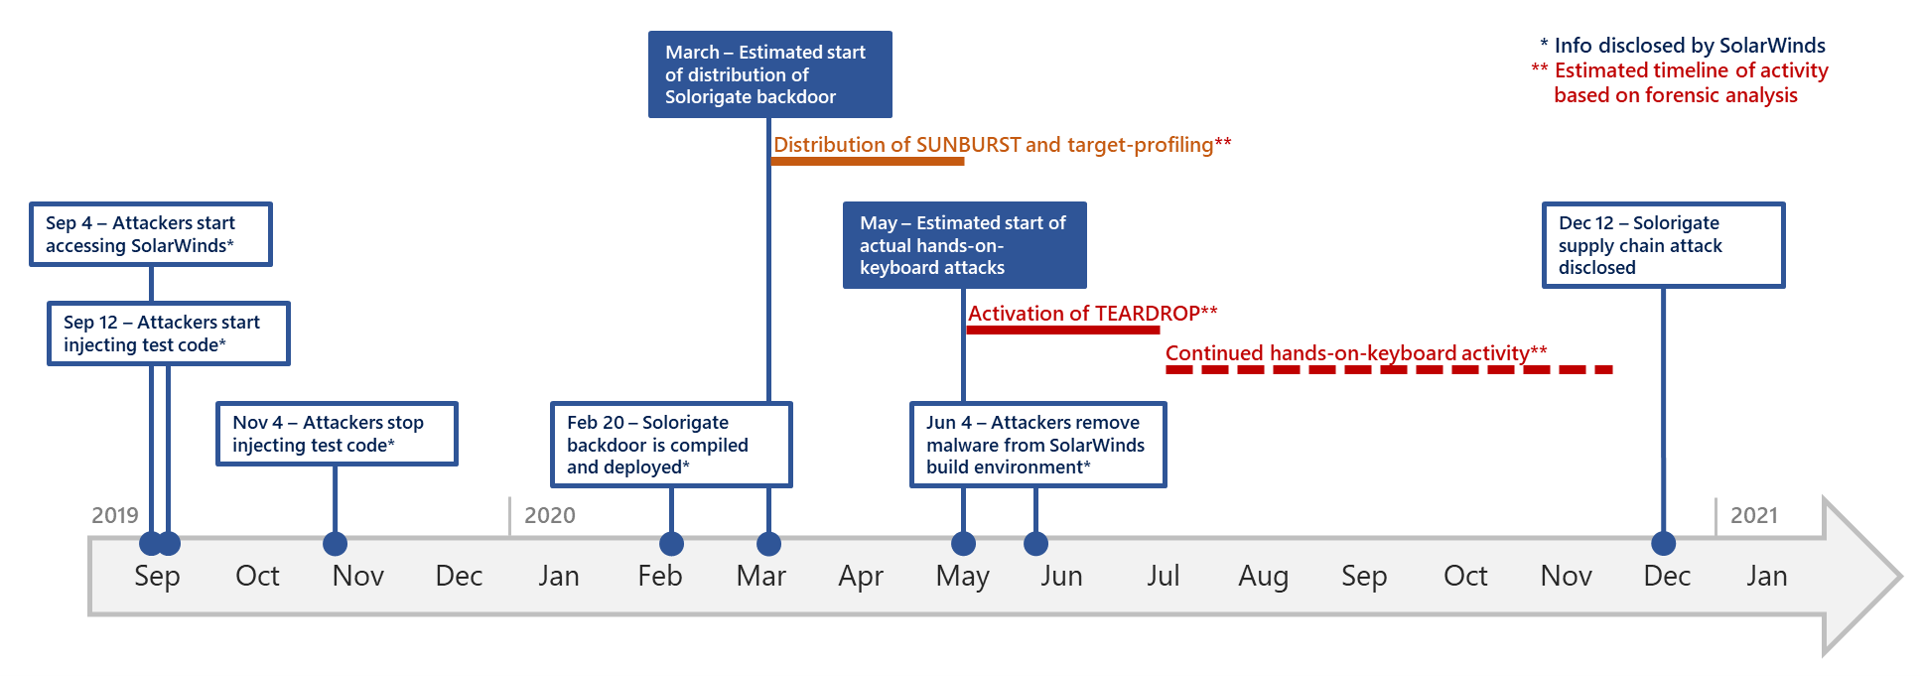 Timeline of Solorigate attack, by Microsoft